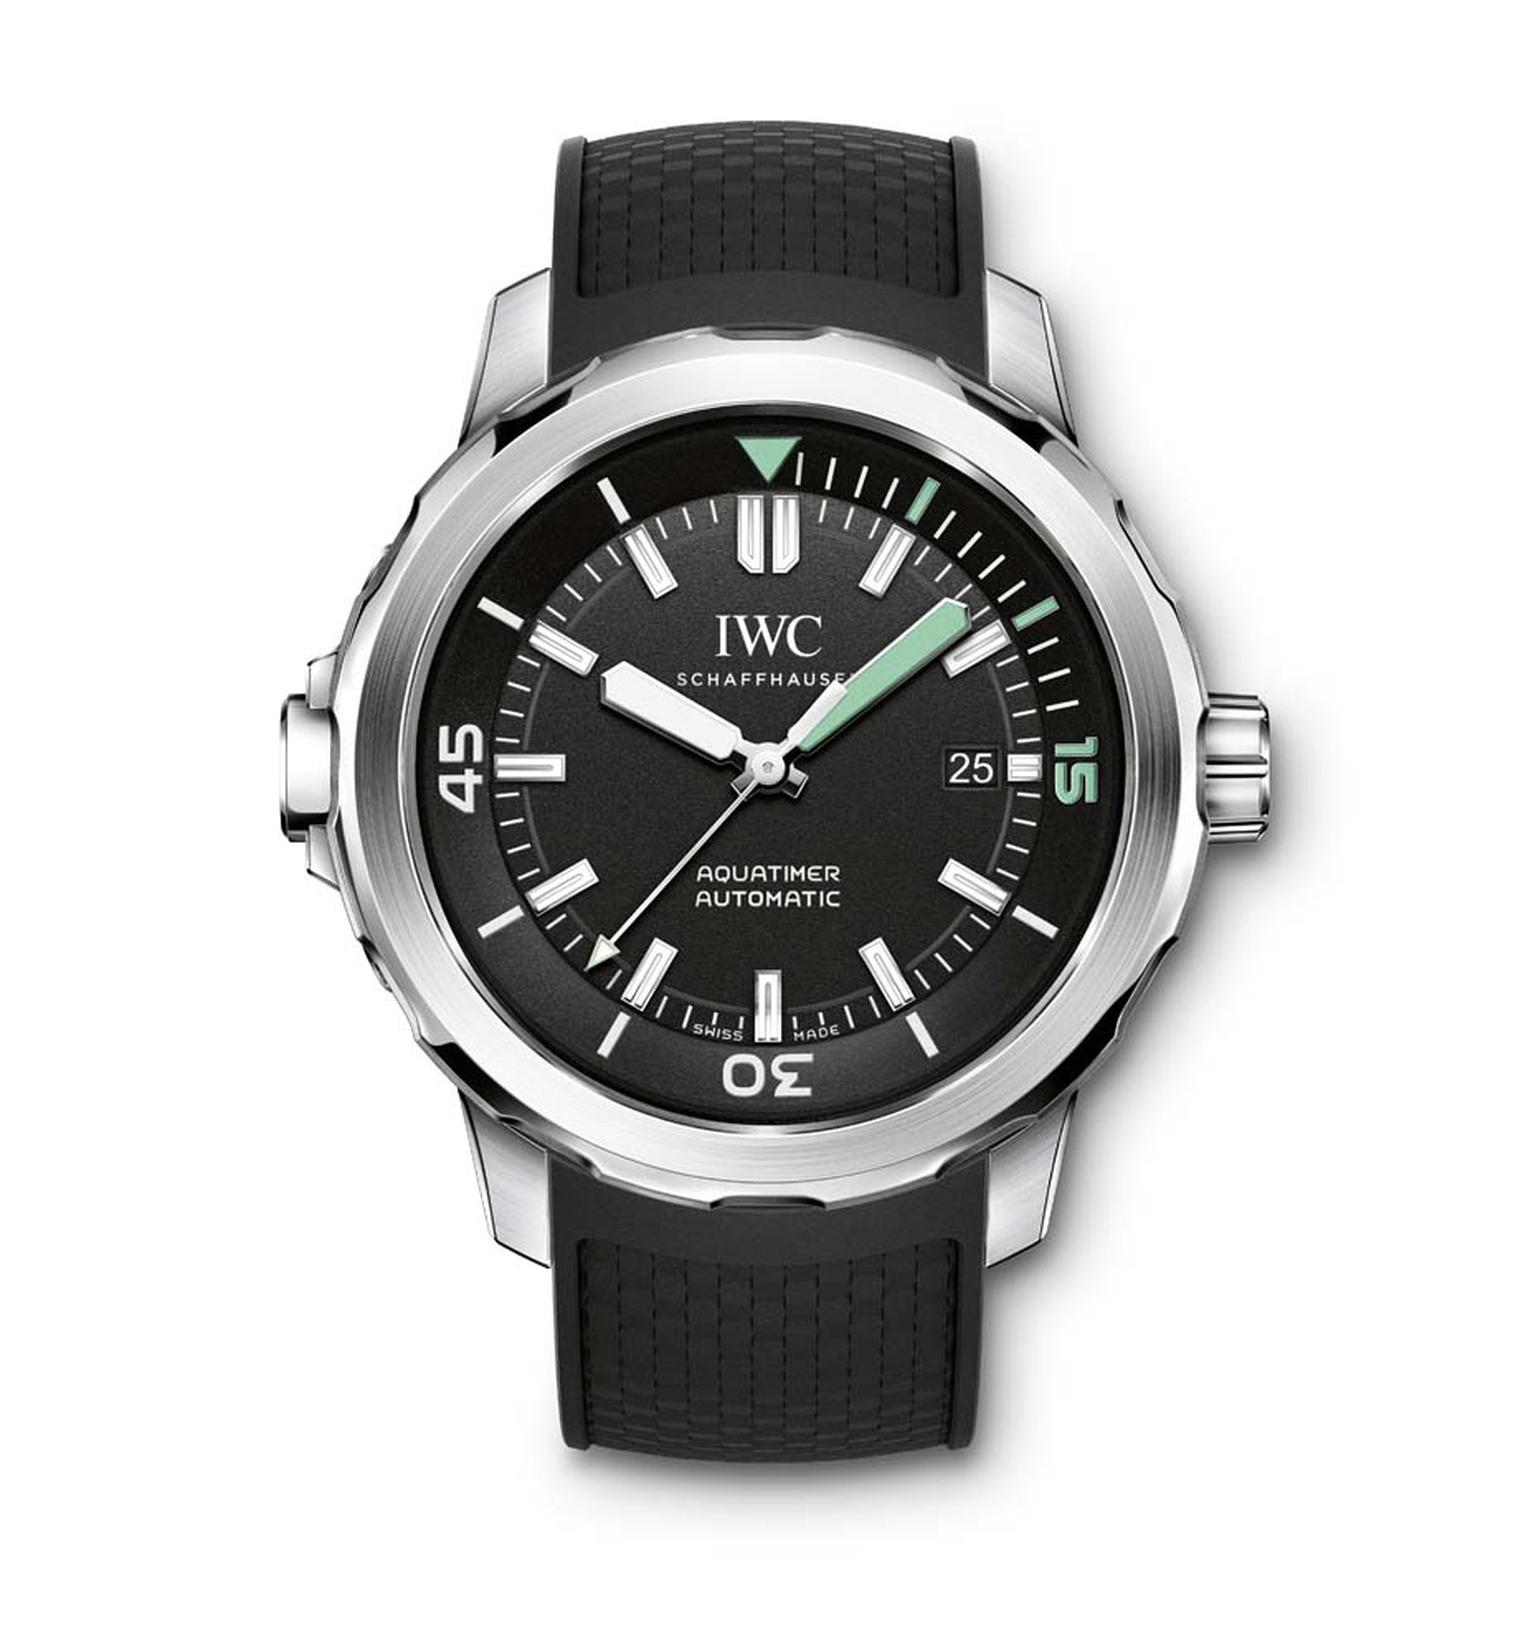 The IWC Aquatimer Automatic is a serious dive watch with just three hands for optimal legibility. The 42mm stainless steel case features IWC watches innovative SafeDive system on both the external and interior bezels (£4,250). Available from Wempe, 43-44